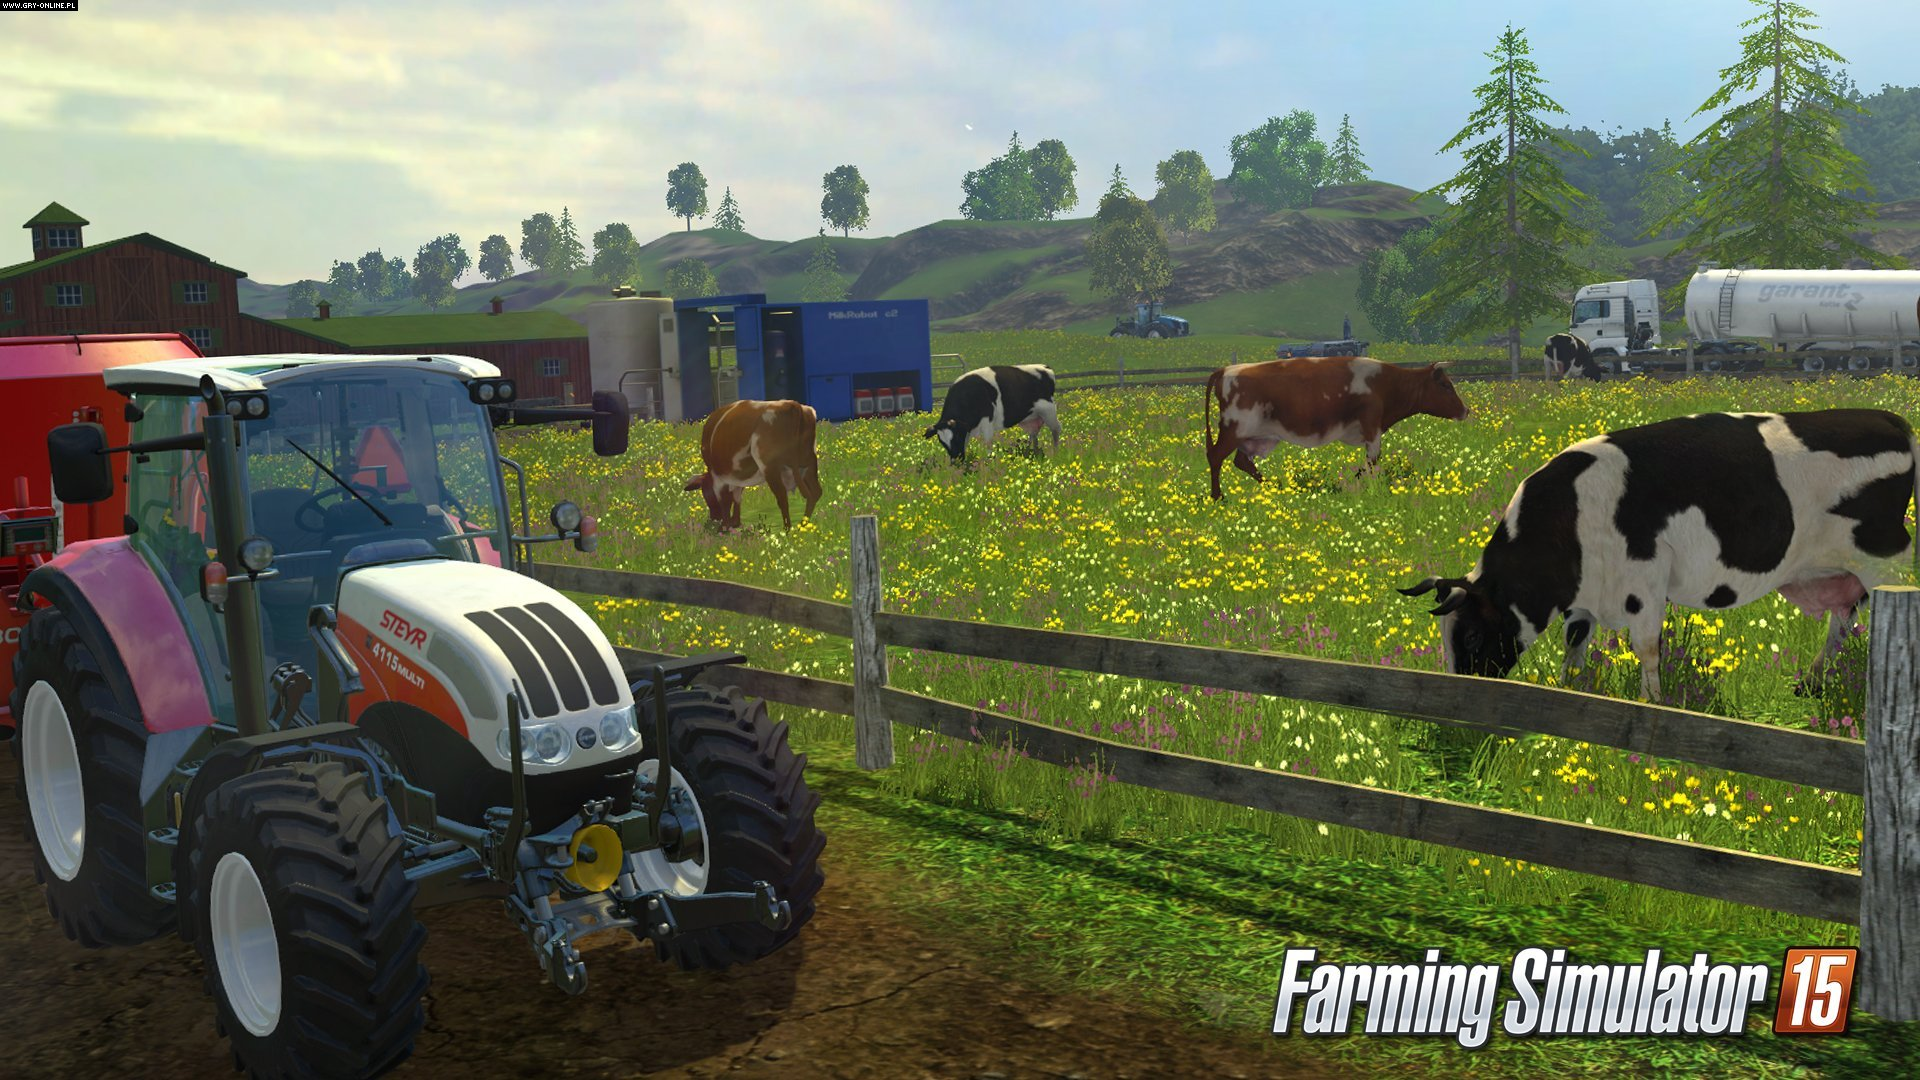 Farming Simulator 15 PC, X360, PS3, XONE, PS4 Games Image 2/14, GIANTS Software, Focus Home Interactive